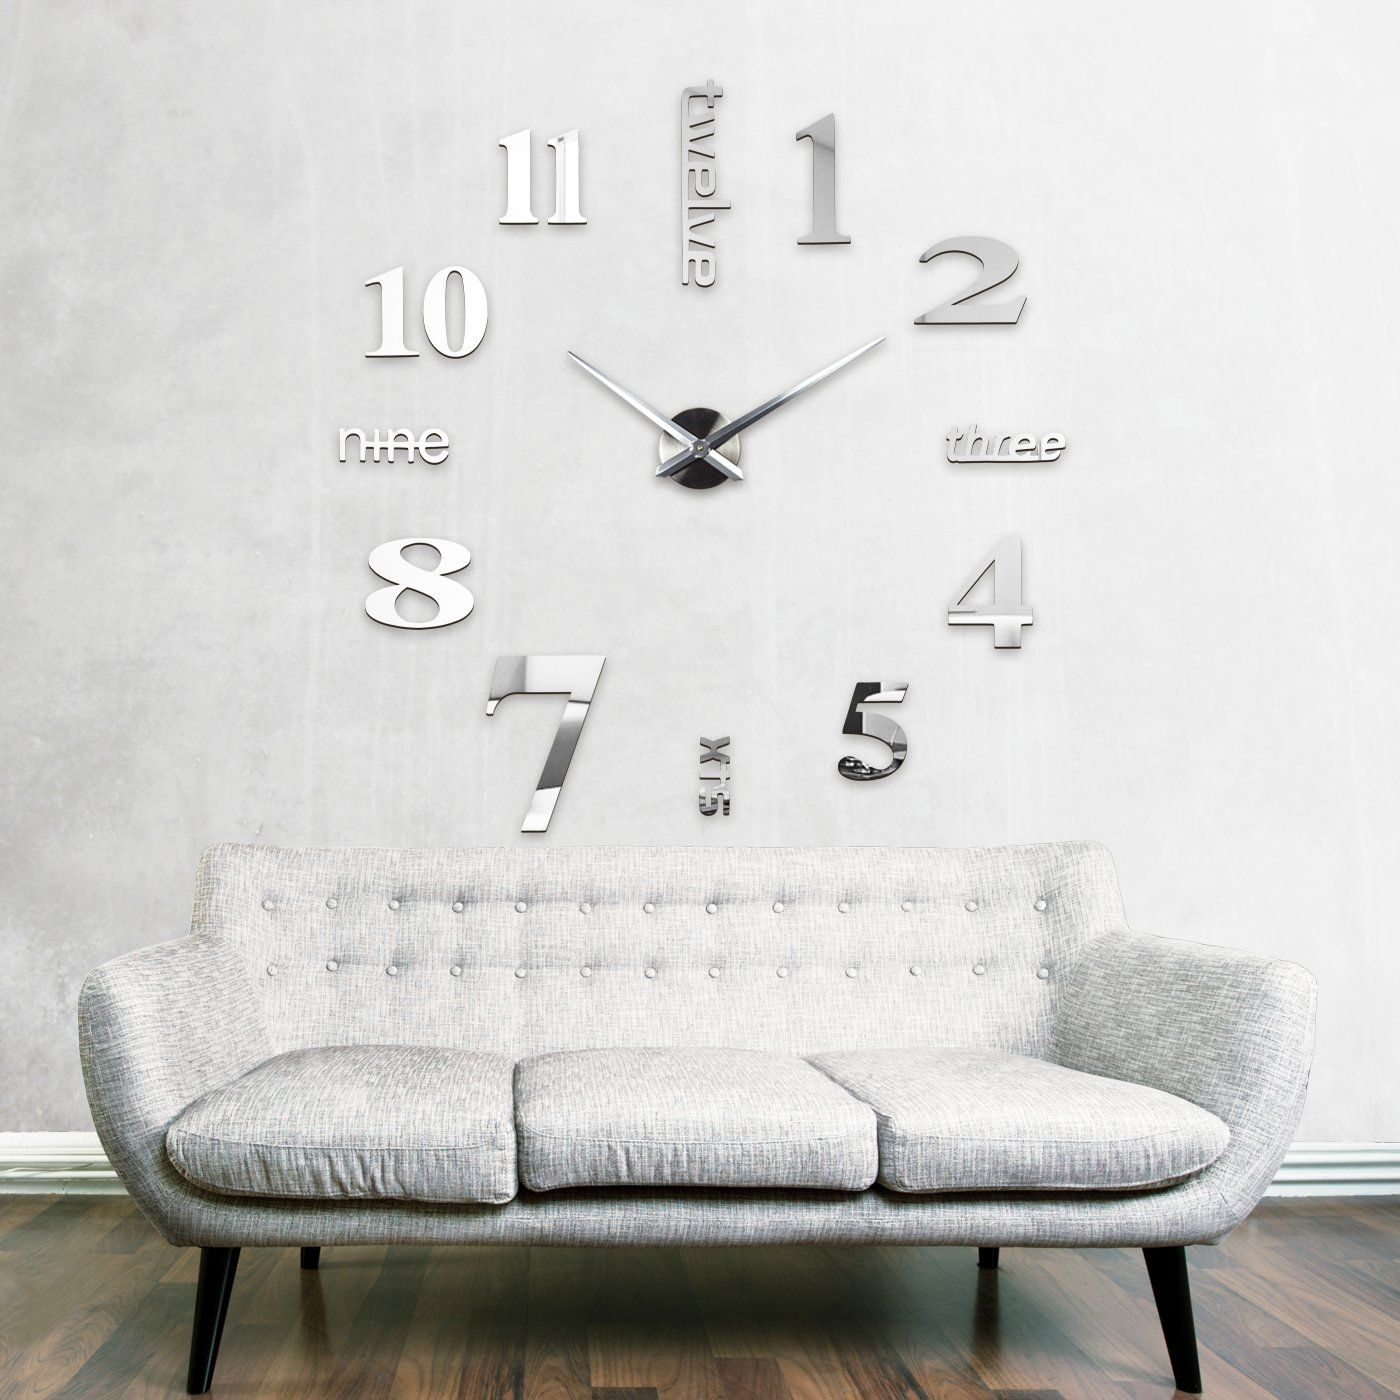 xxl3d grande horloge murale xxl 130cm miroir geante pendules murales xv d coration pinterest. Black Bedroom Furniture Sets. Home Design Ideas